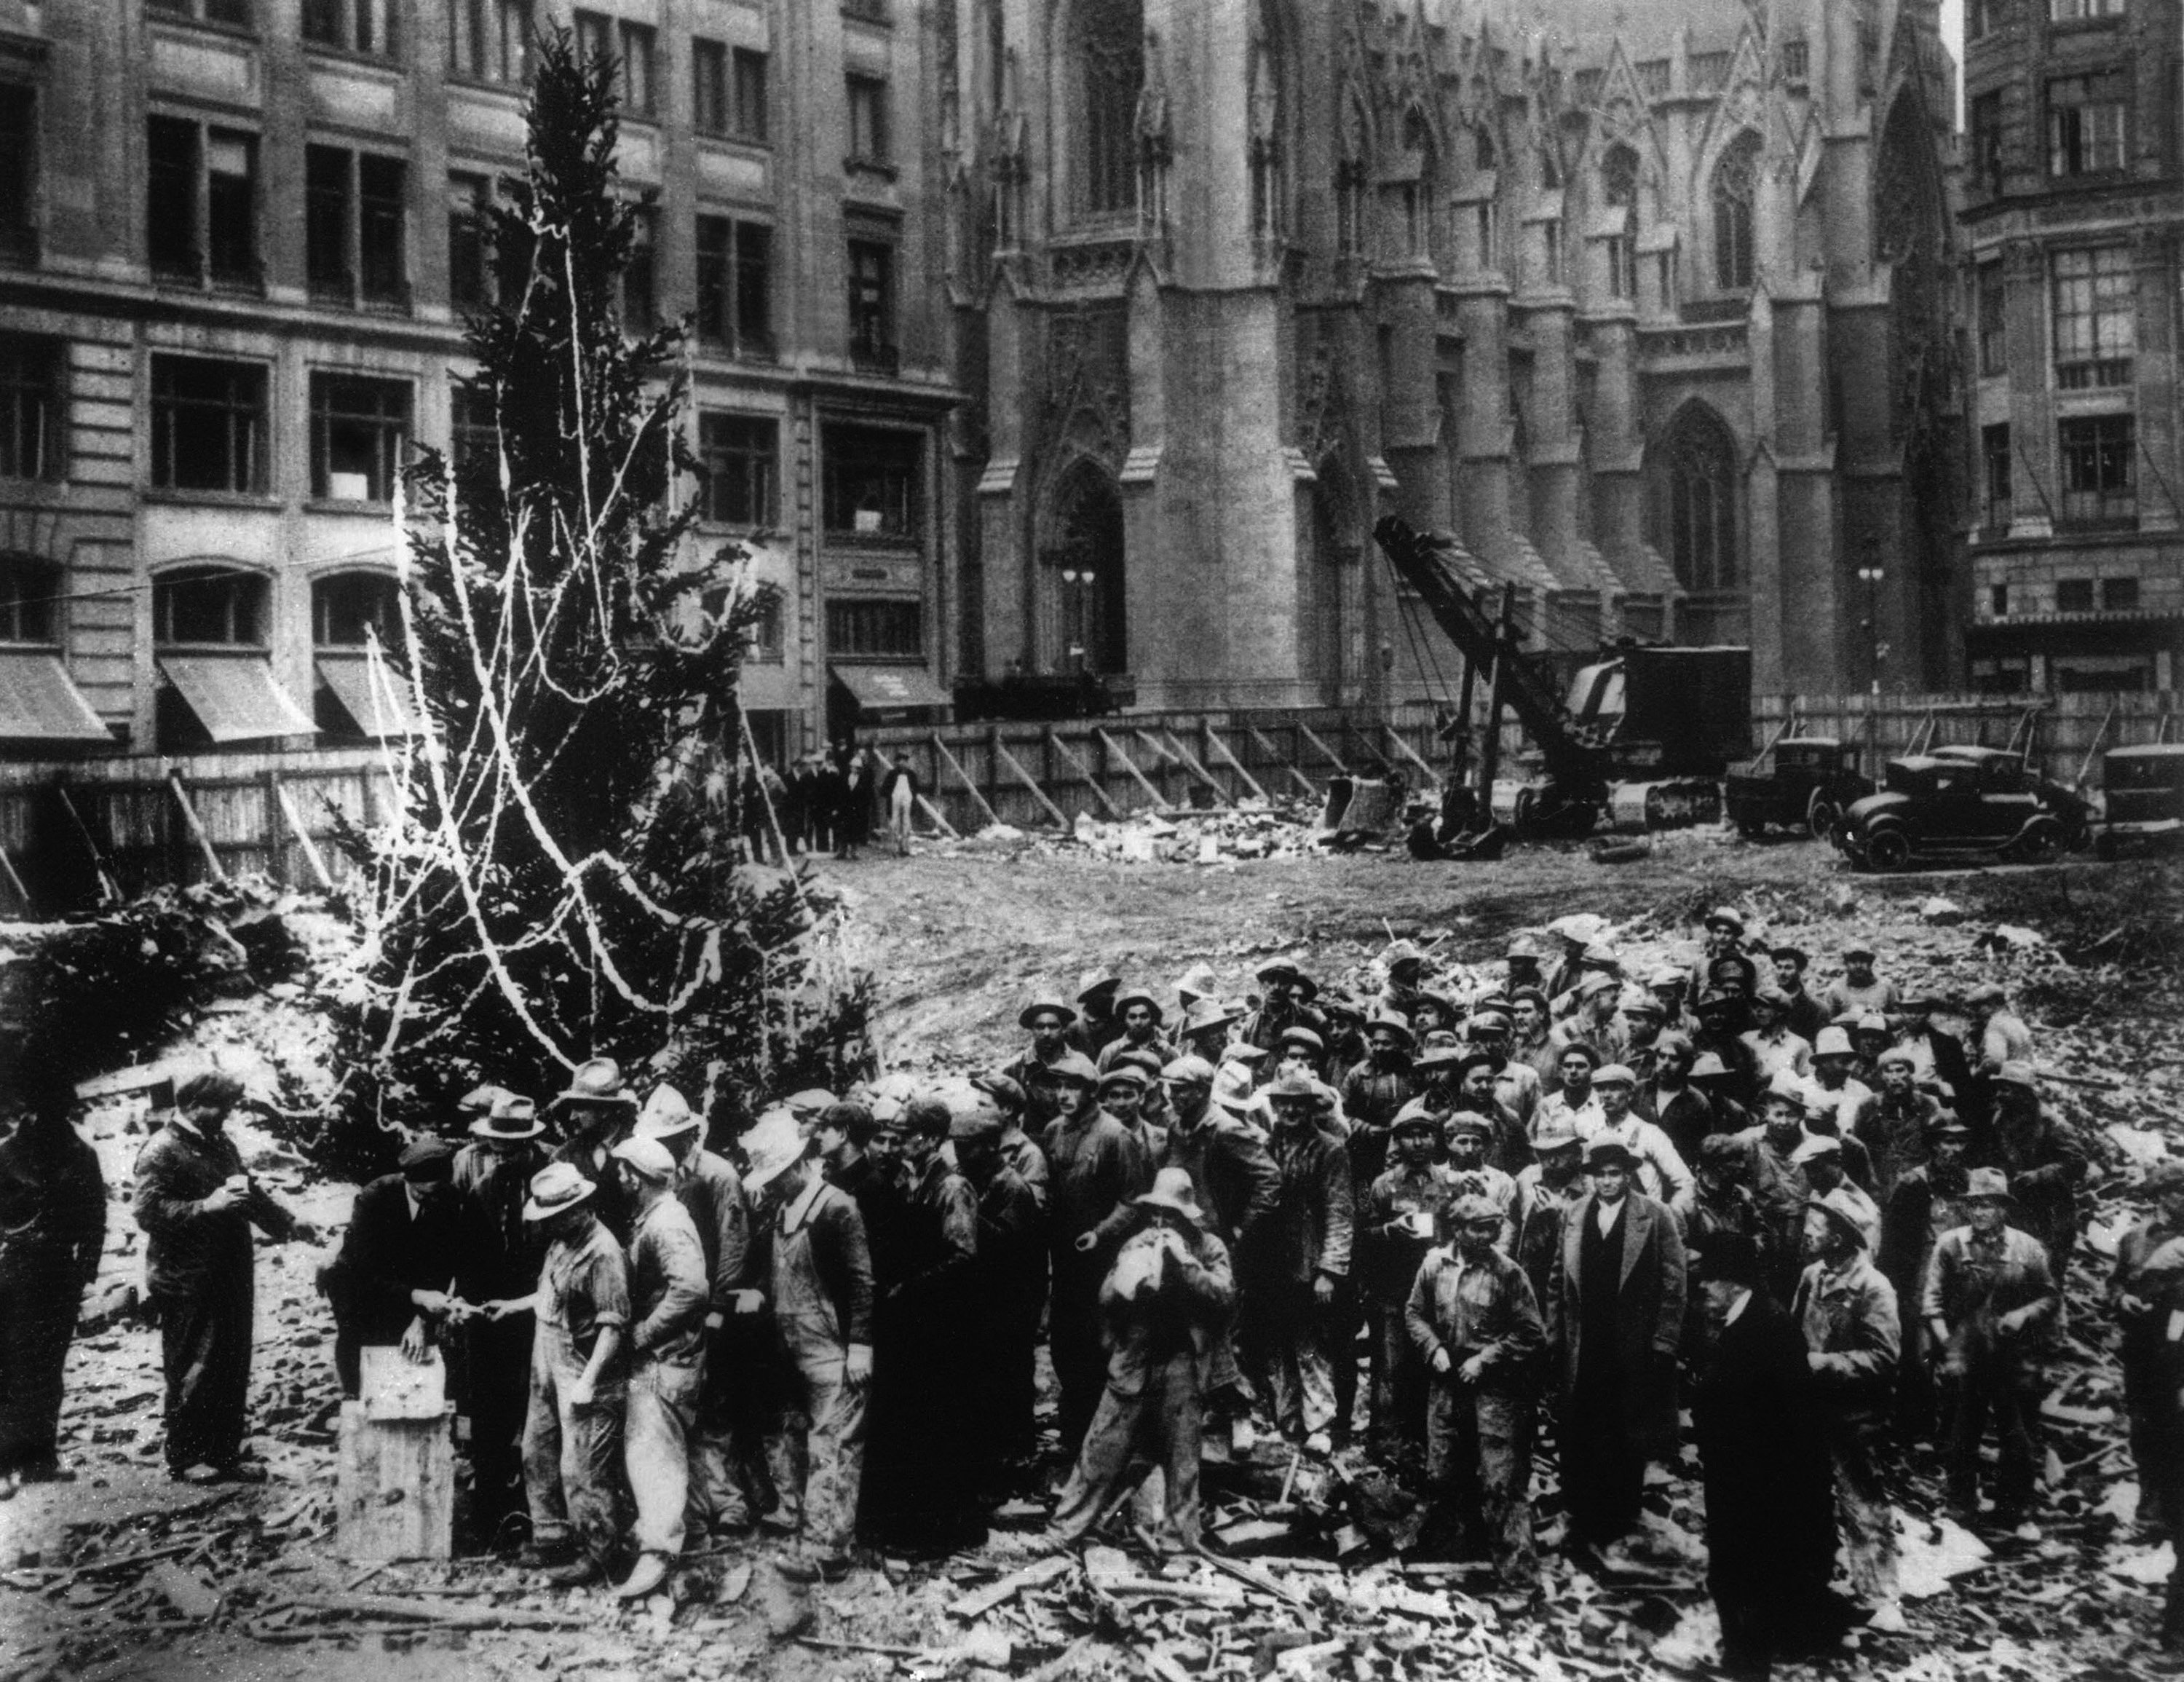 Construction workers line up for pay beside the first Rockefeller Center Christmas tree in New York in 1931. St. Patrick's Cathedral is visible in the background on Fifth Avenue.